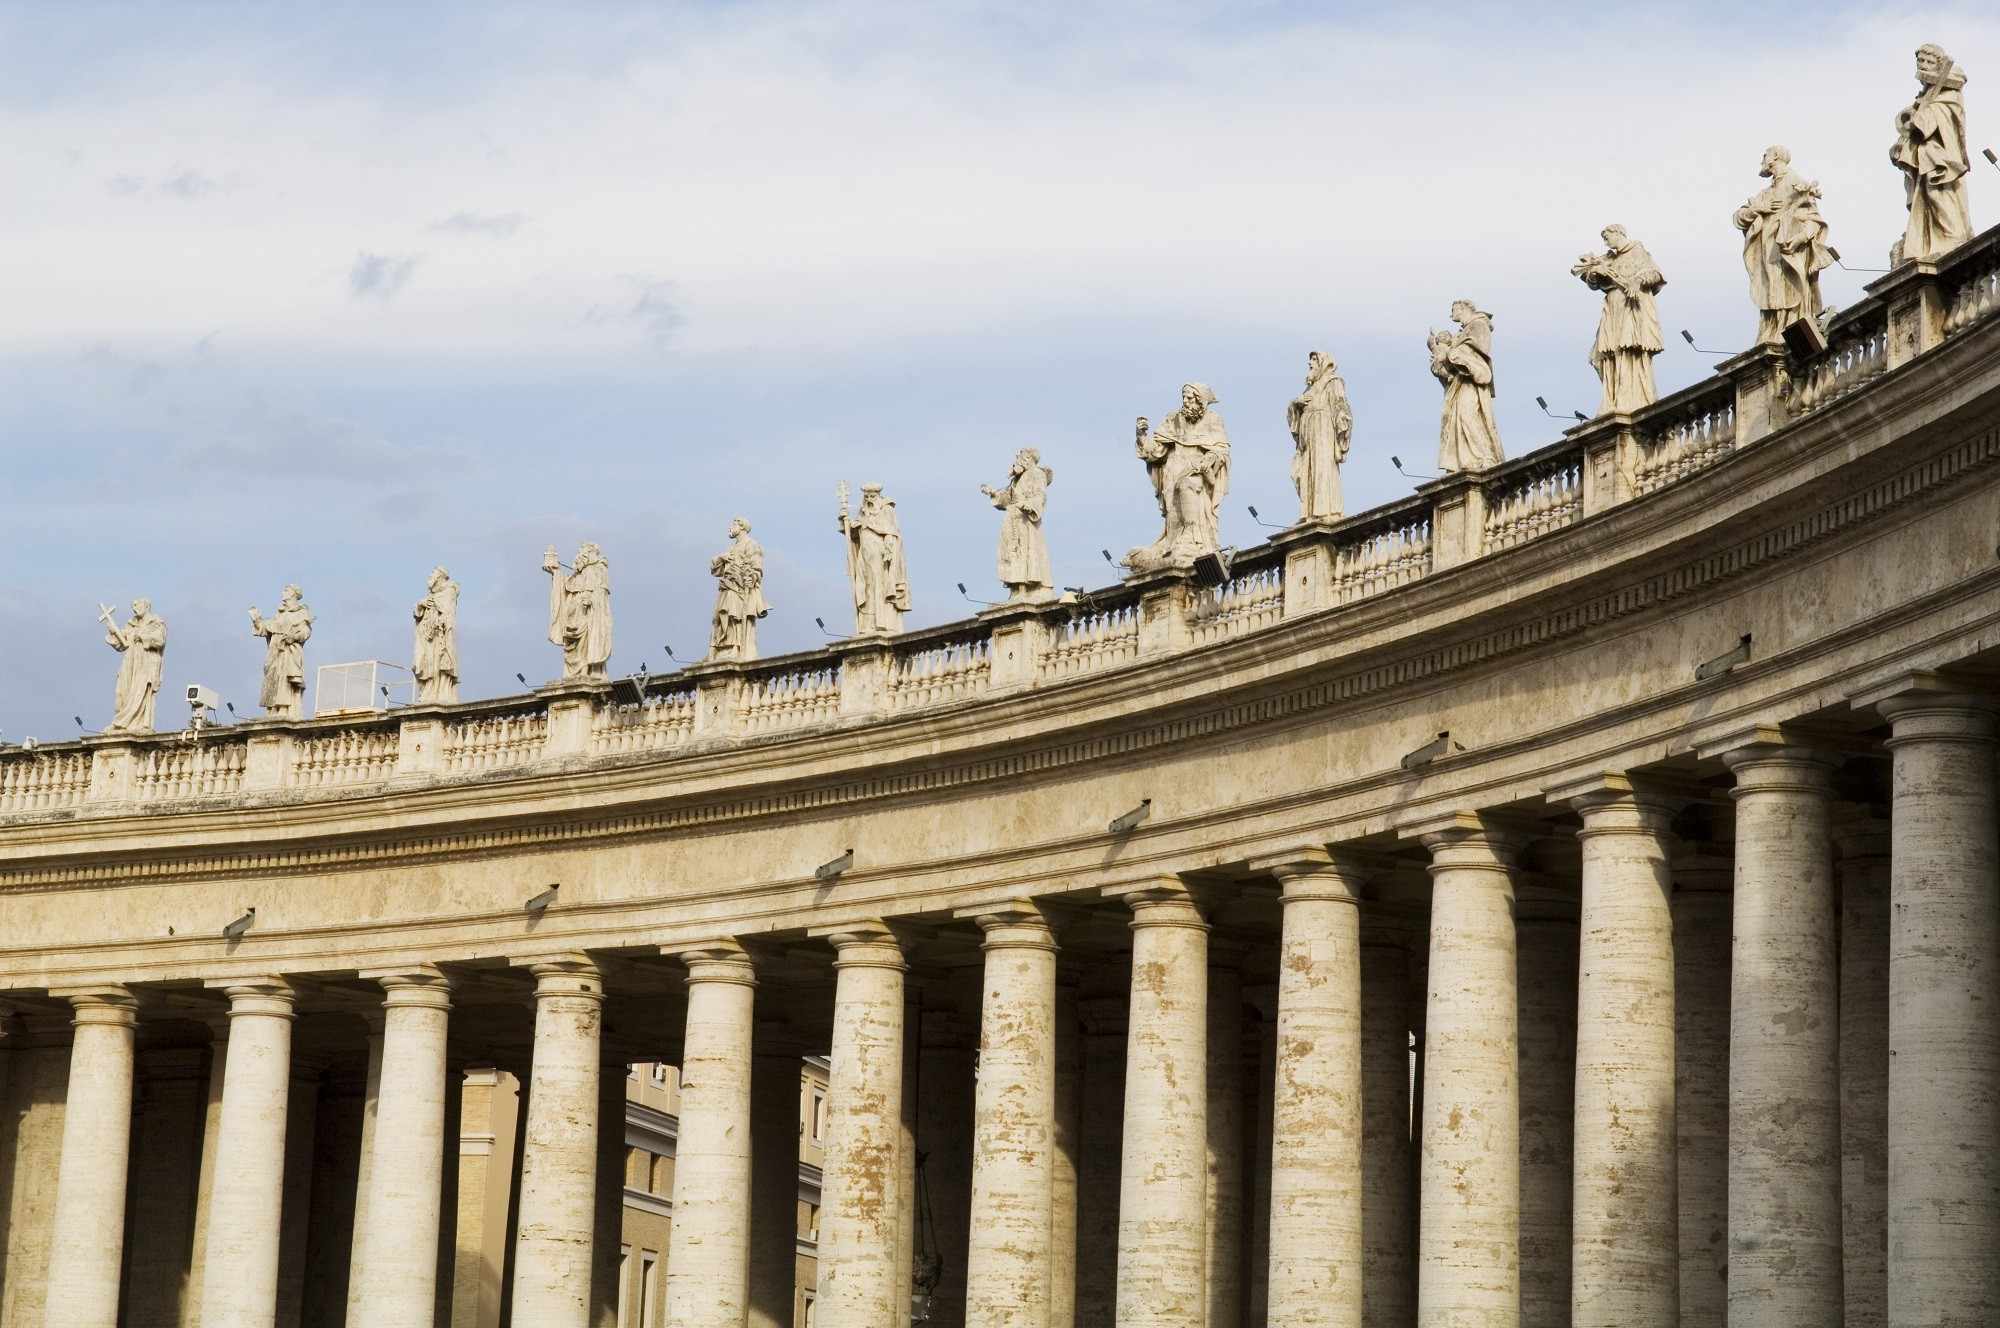 St. Peter's Square colonnades by Bernini | Source: lonelyplanet.com